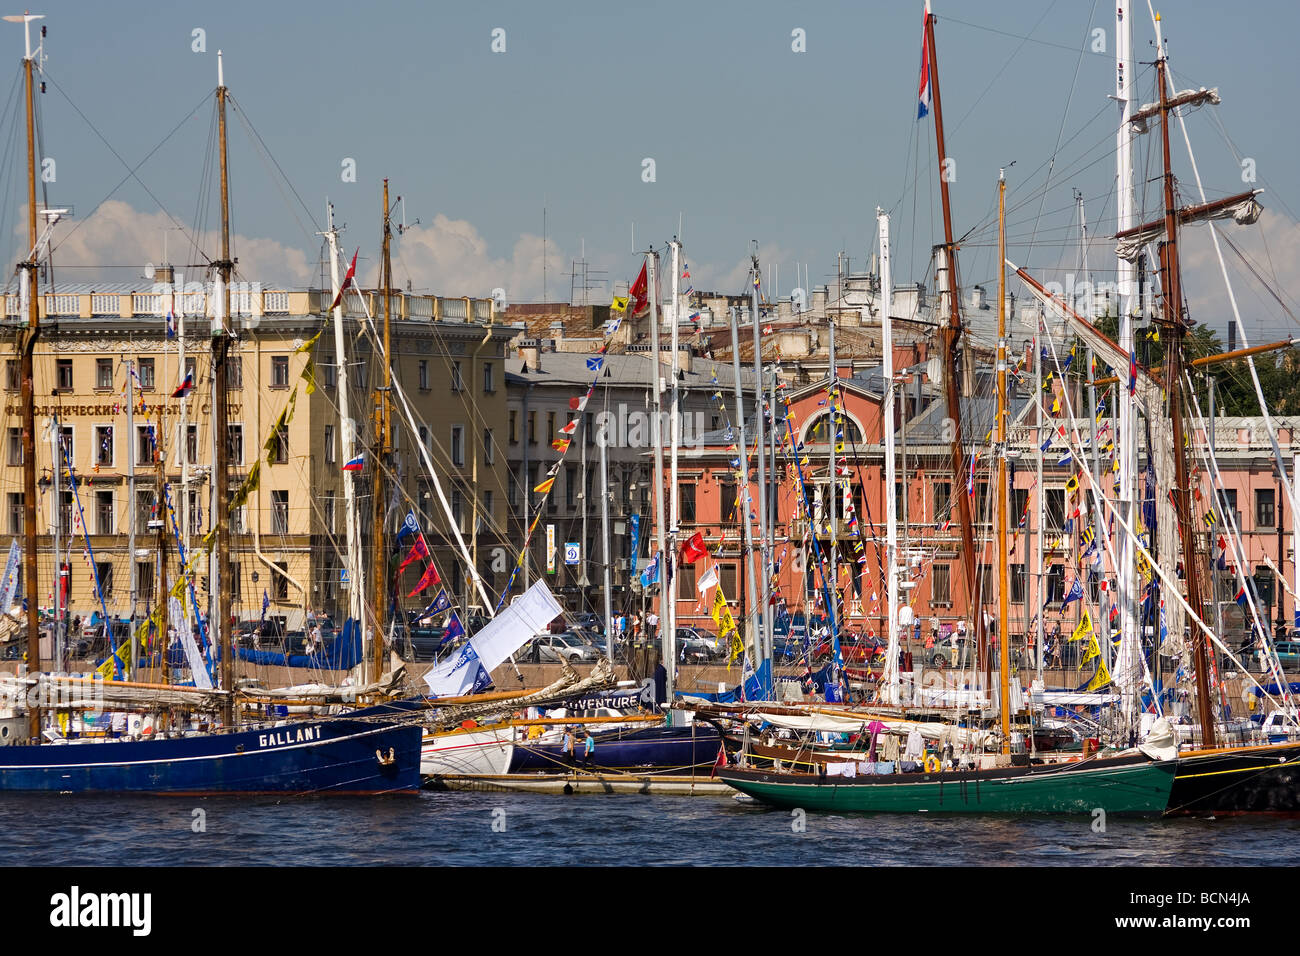 TALL SHIPS RACES St Petersburg Russia July 11 14 2009 Stock Photo